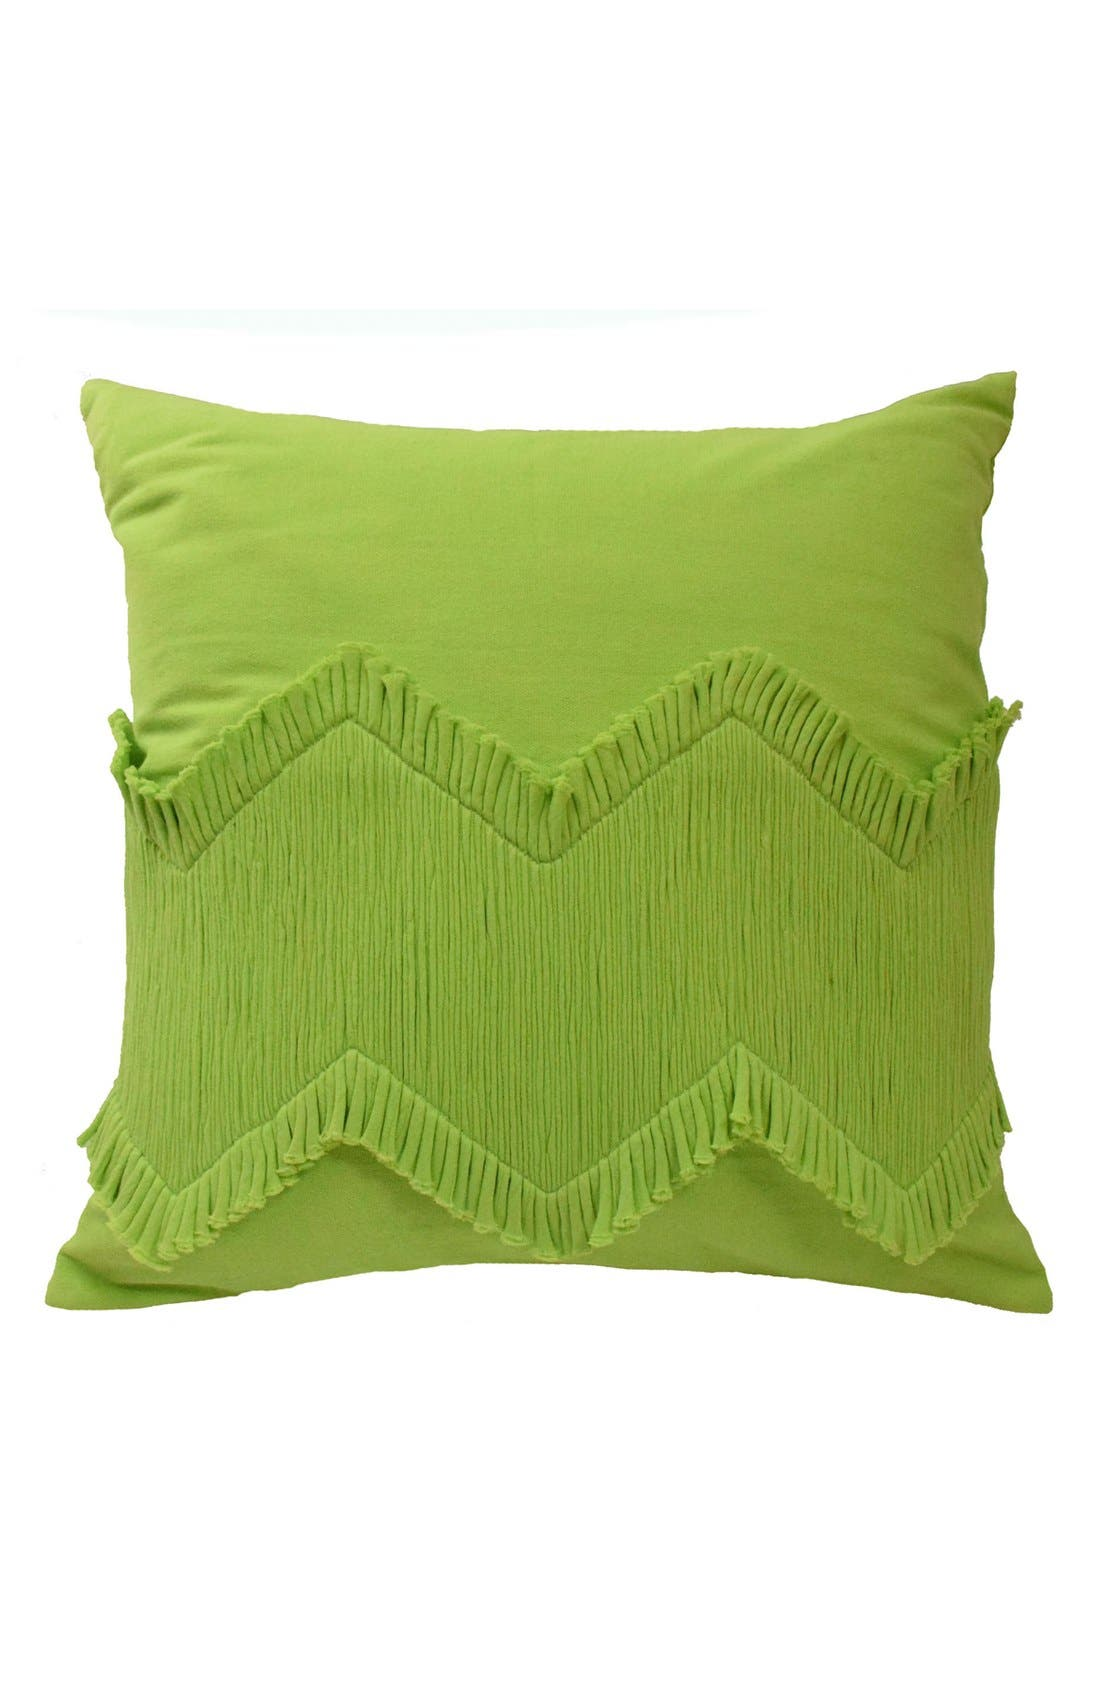 Alternate Image 1 Selected - Blissliving Home 'Puebla' Pillow